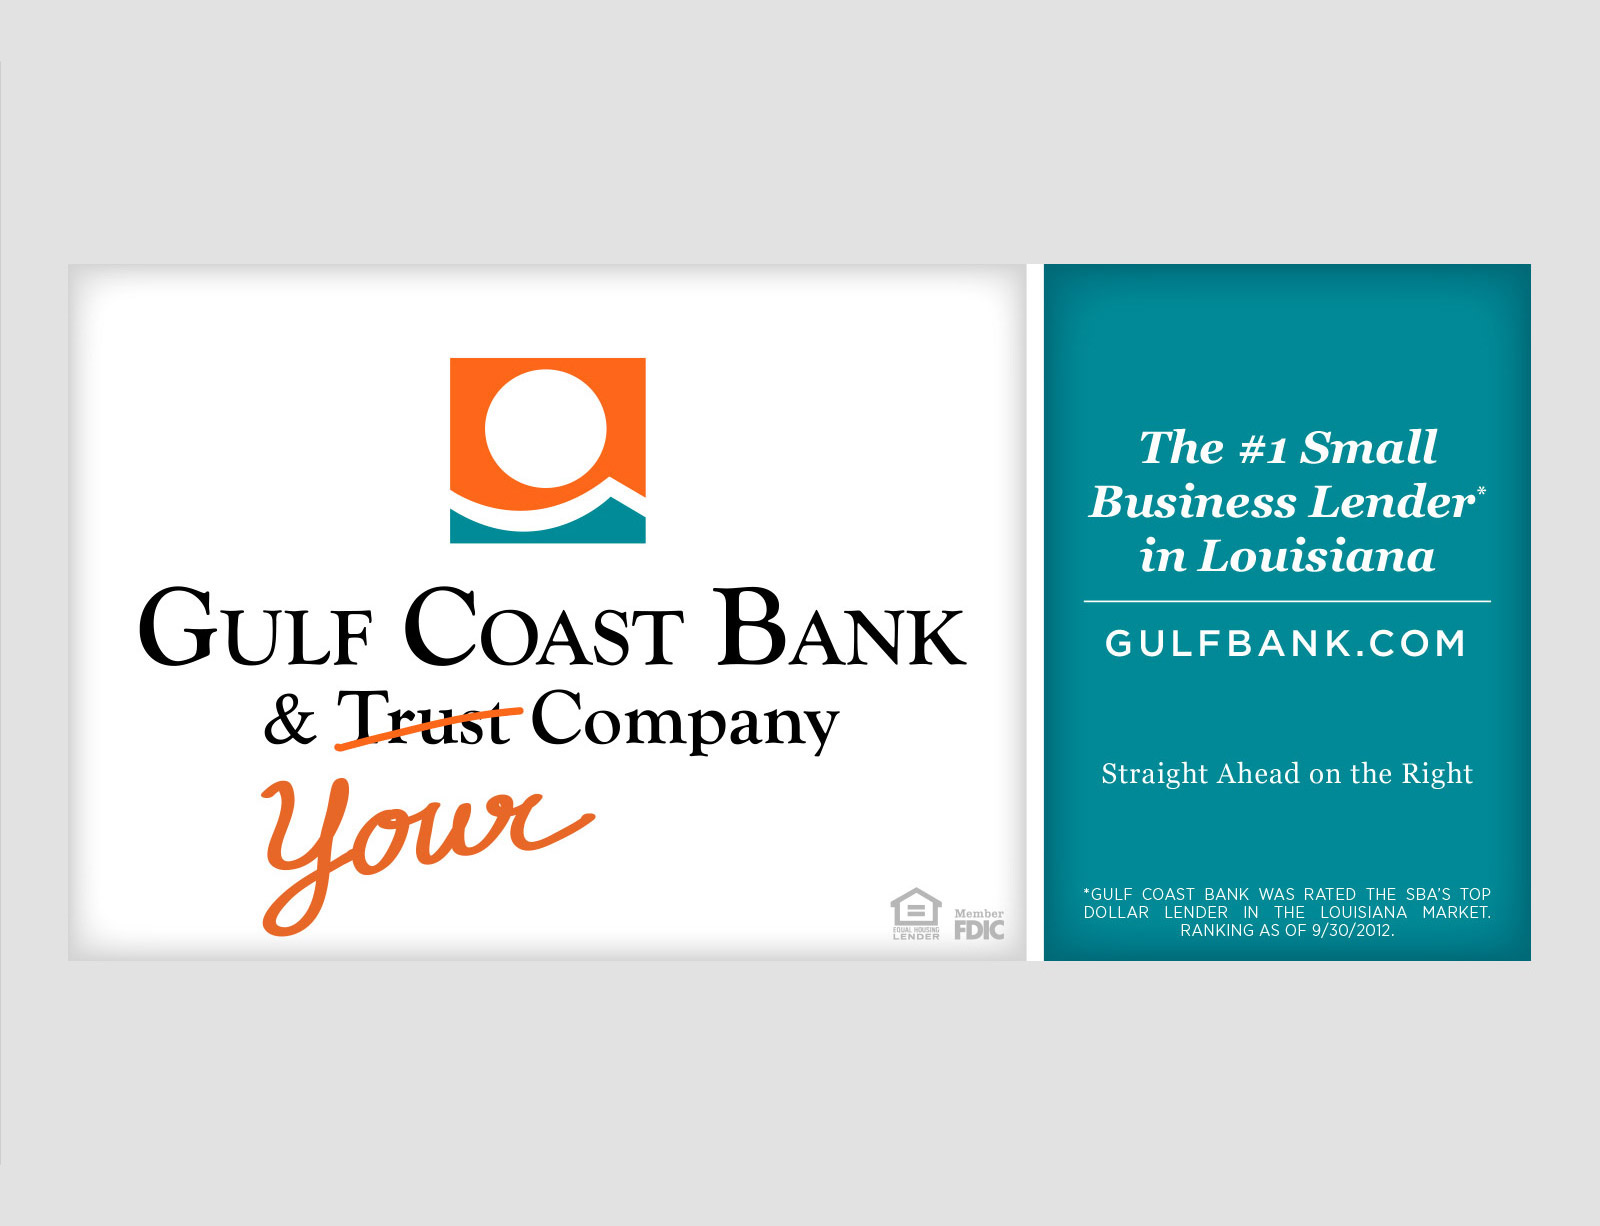 OUTDOOR_Gulf-Coast-Bank-Digital-Poster-Generic.jpg